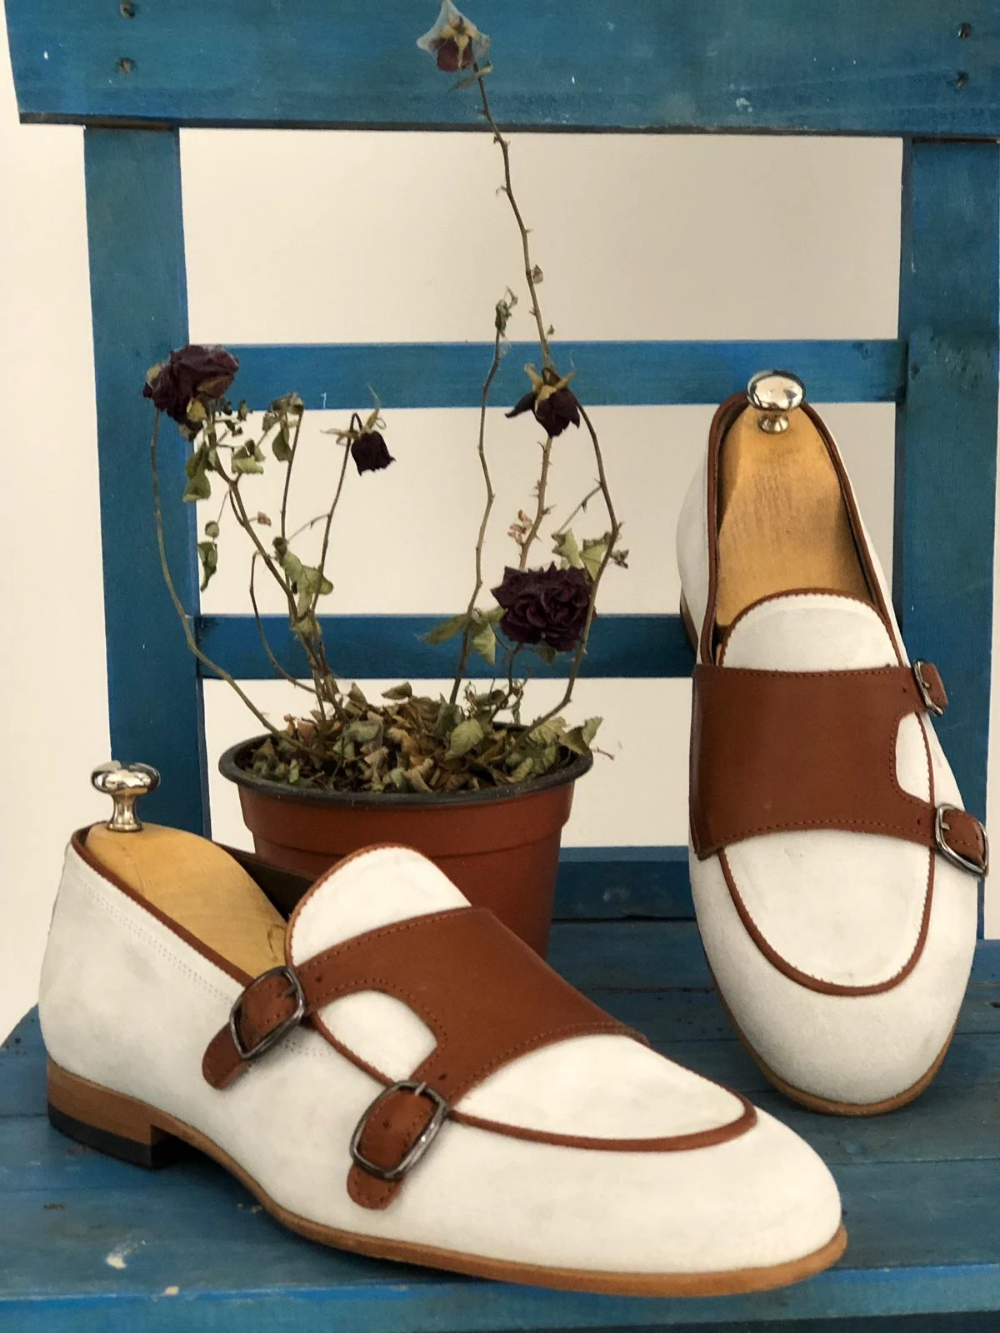 Voti Suade Leather Shoes 3 Colors Leather Shoes Suede Leather Shoes Shoes